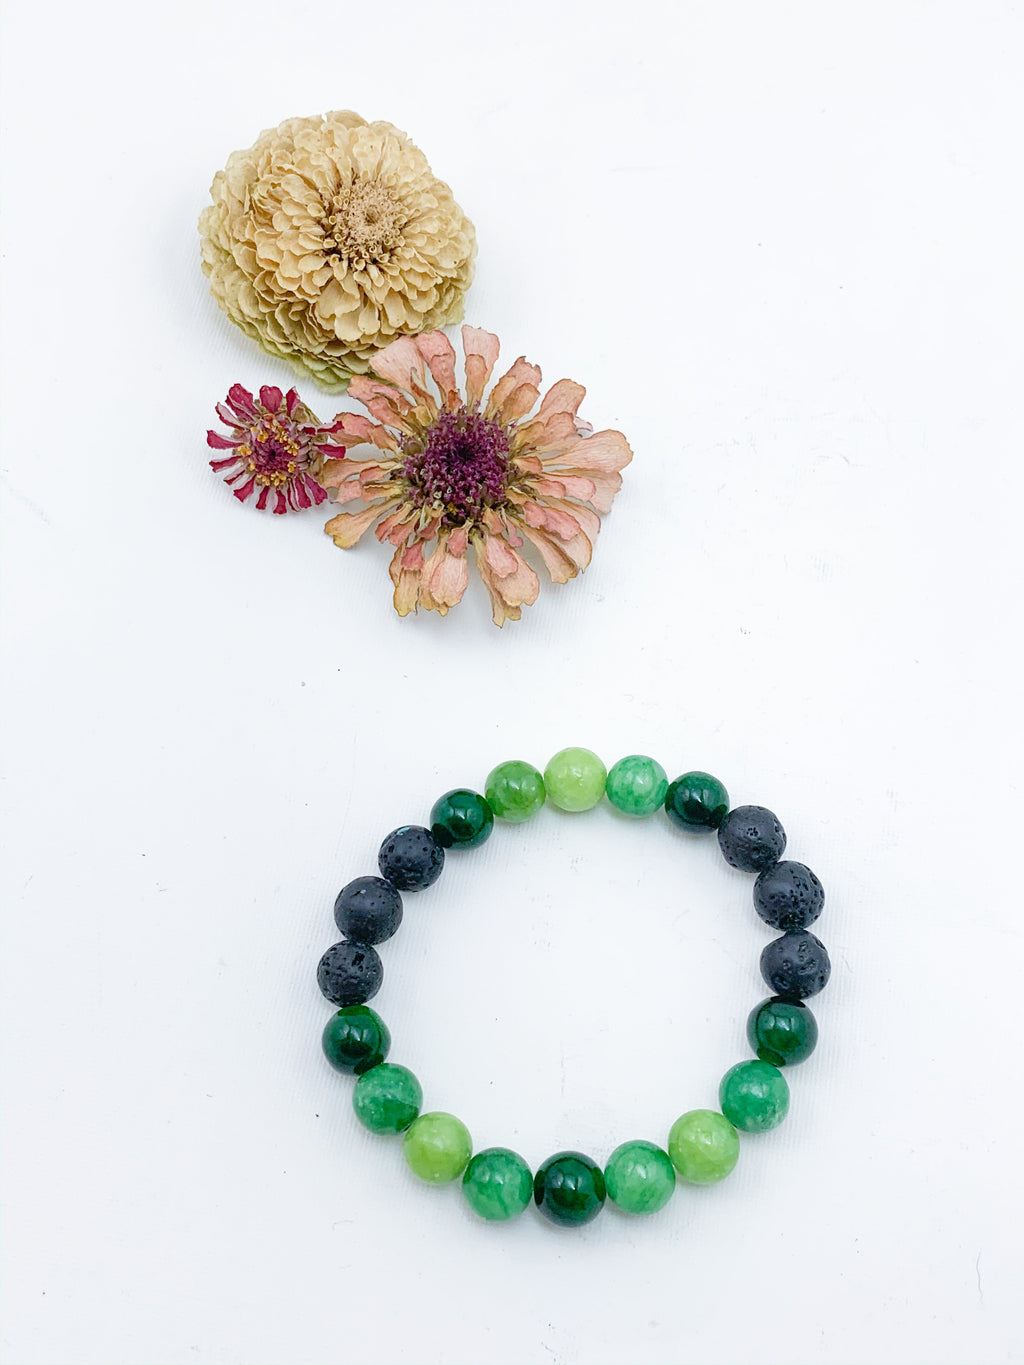 Green Jasper and Lava Bead Diffuser Bracelet - Allie & Tess